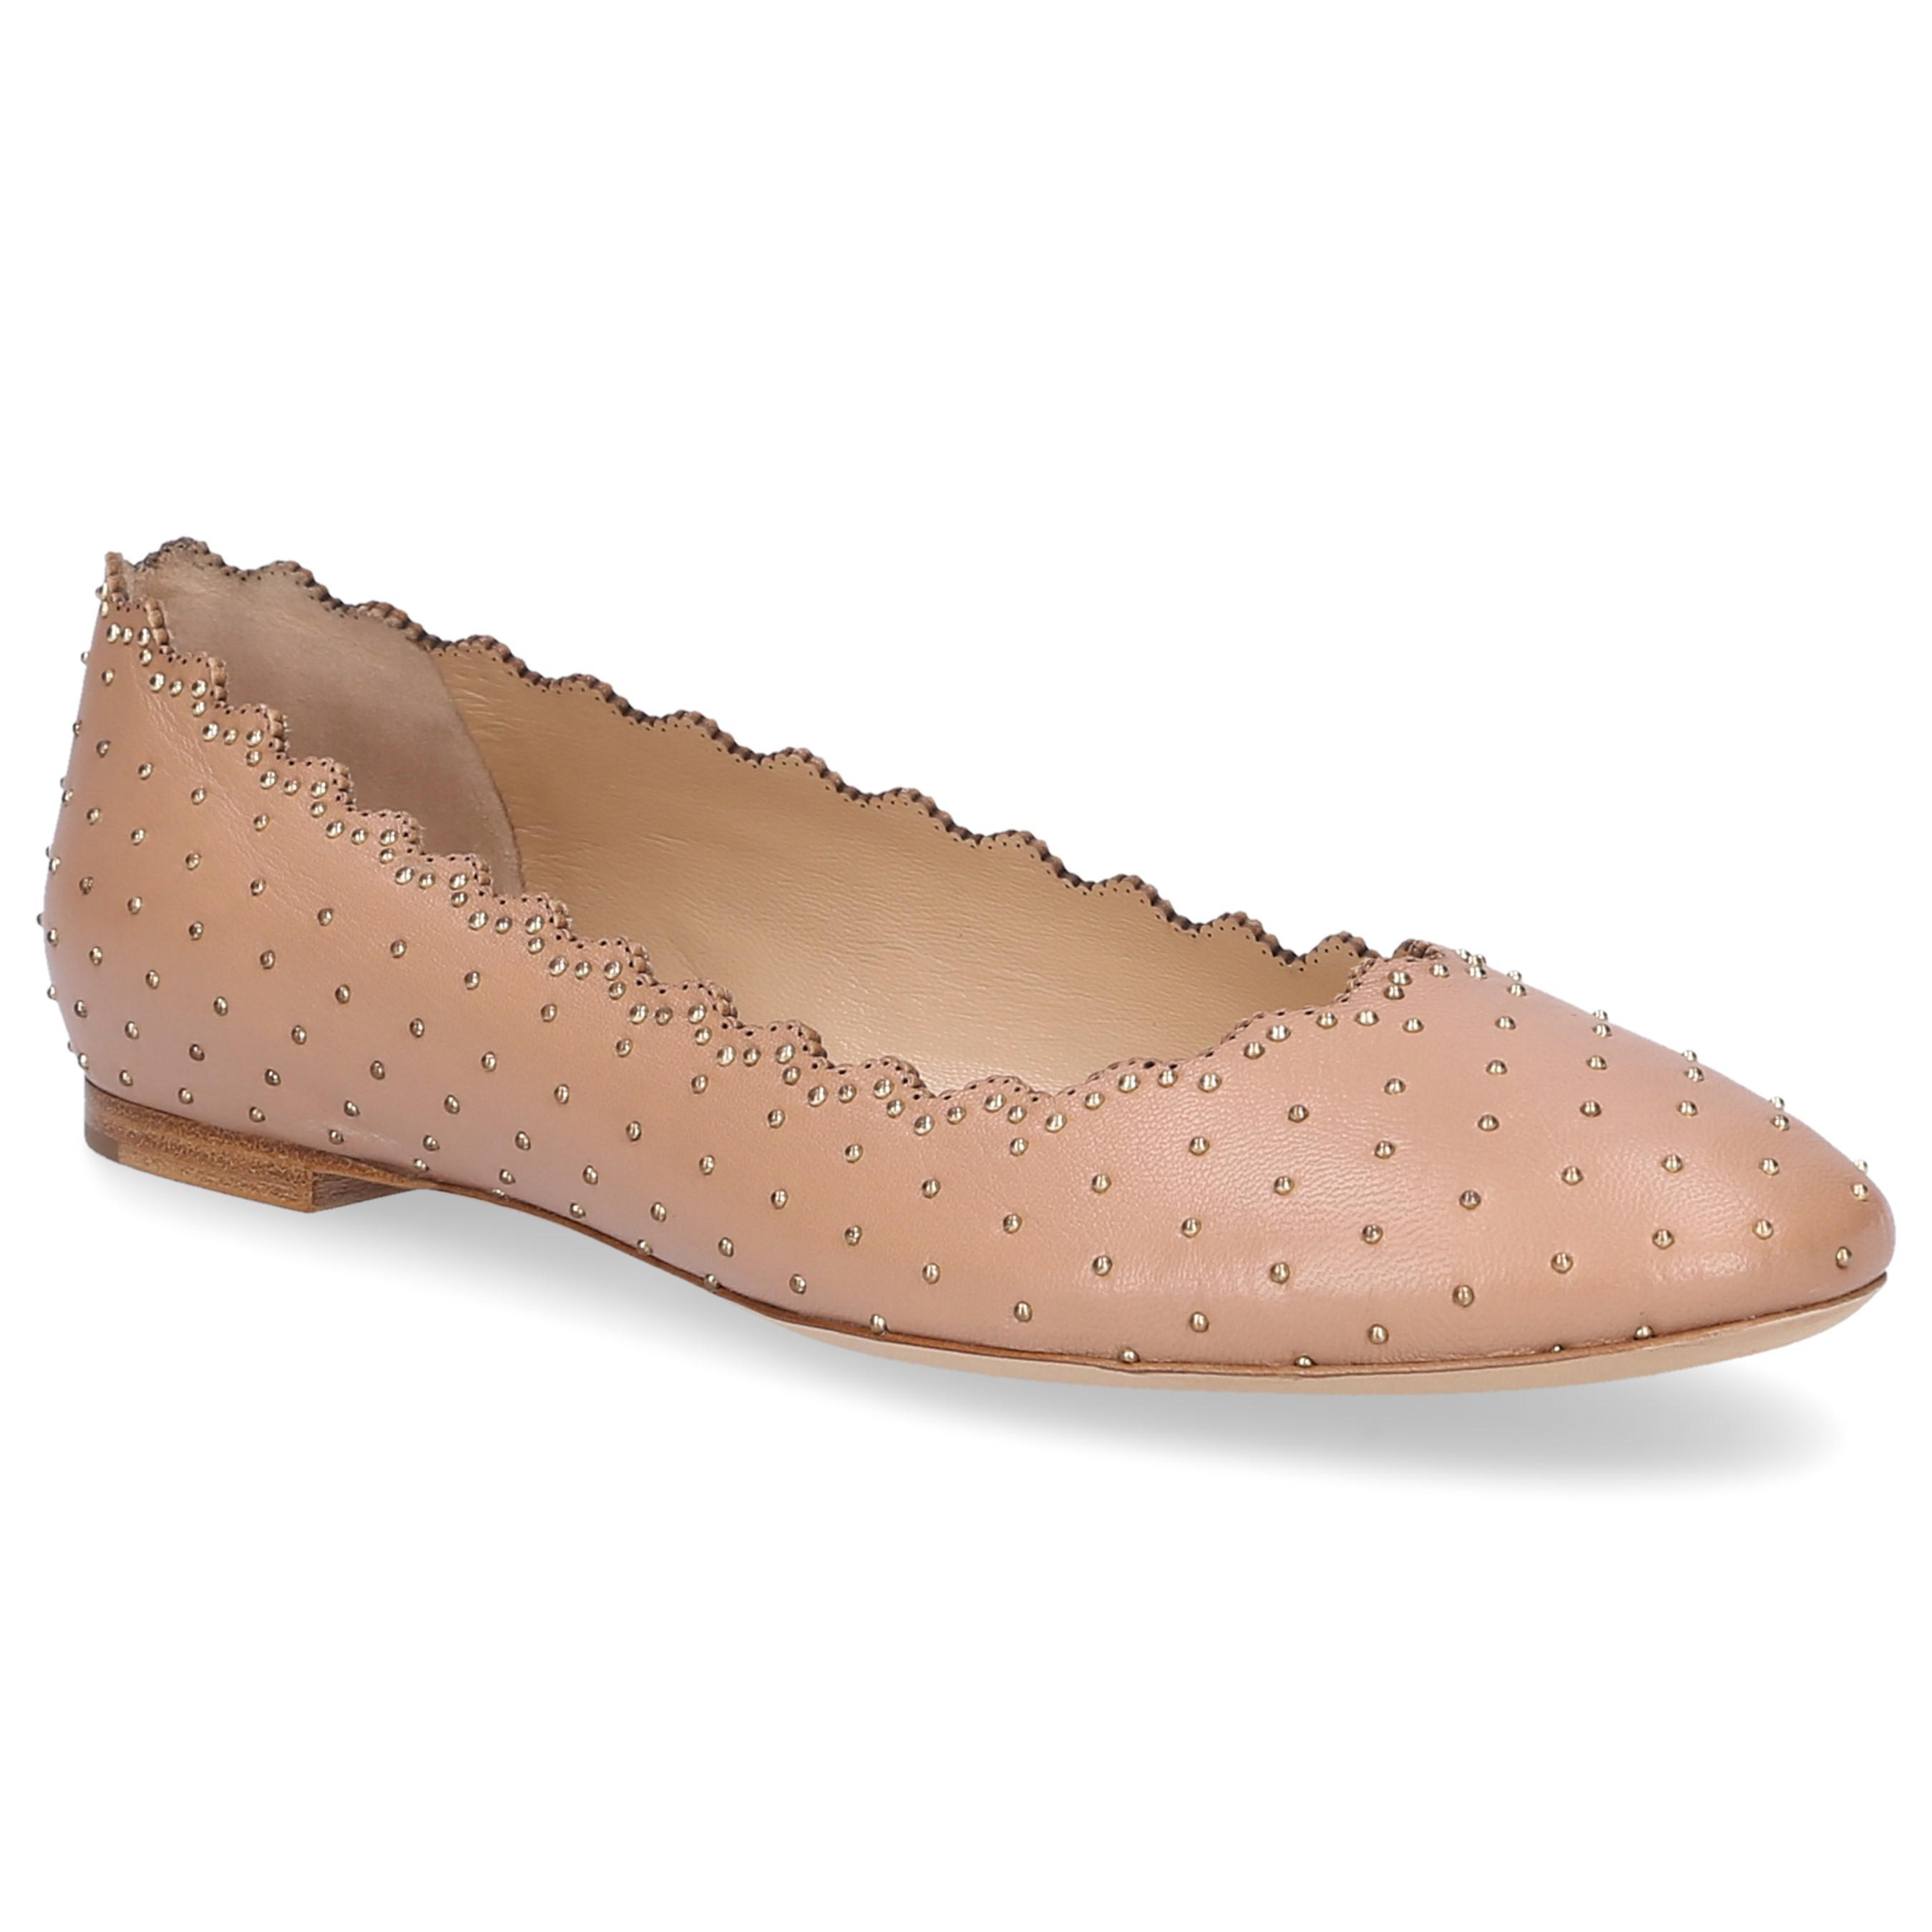 Cheap Limited Edition Cheap Lowest Price Chloé Ballet pumps nappa leather Rivets Release Dates For Sale Discount Low Cost xBME9k